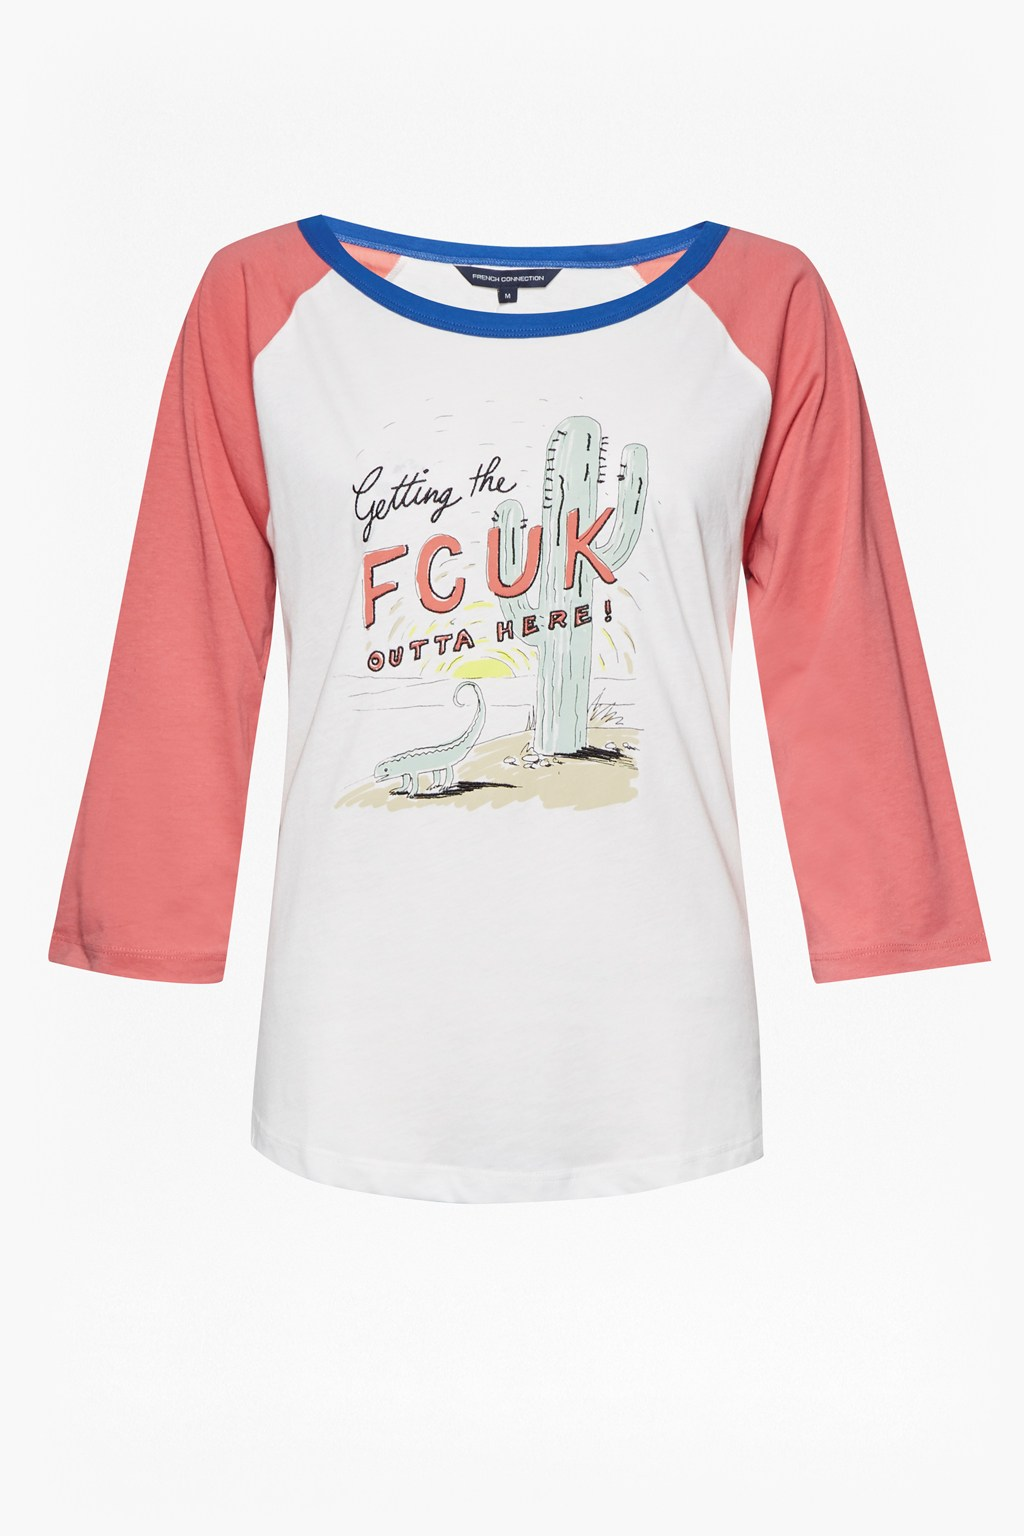 74ad5b924d3 Fcuk Getaway Long Sleeve Round Neck T Shirt. loading images.